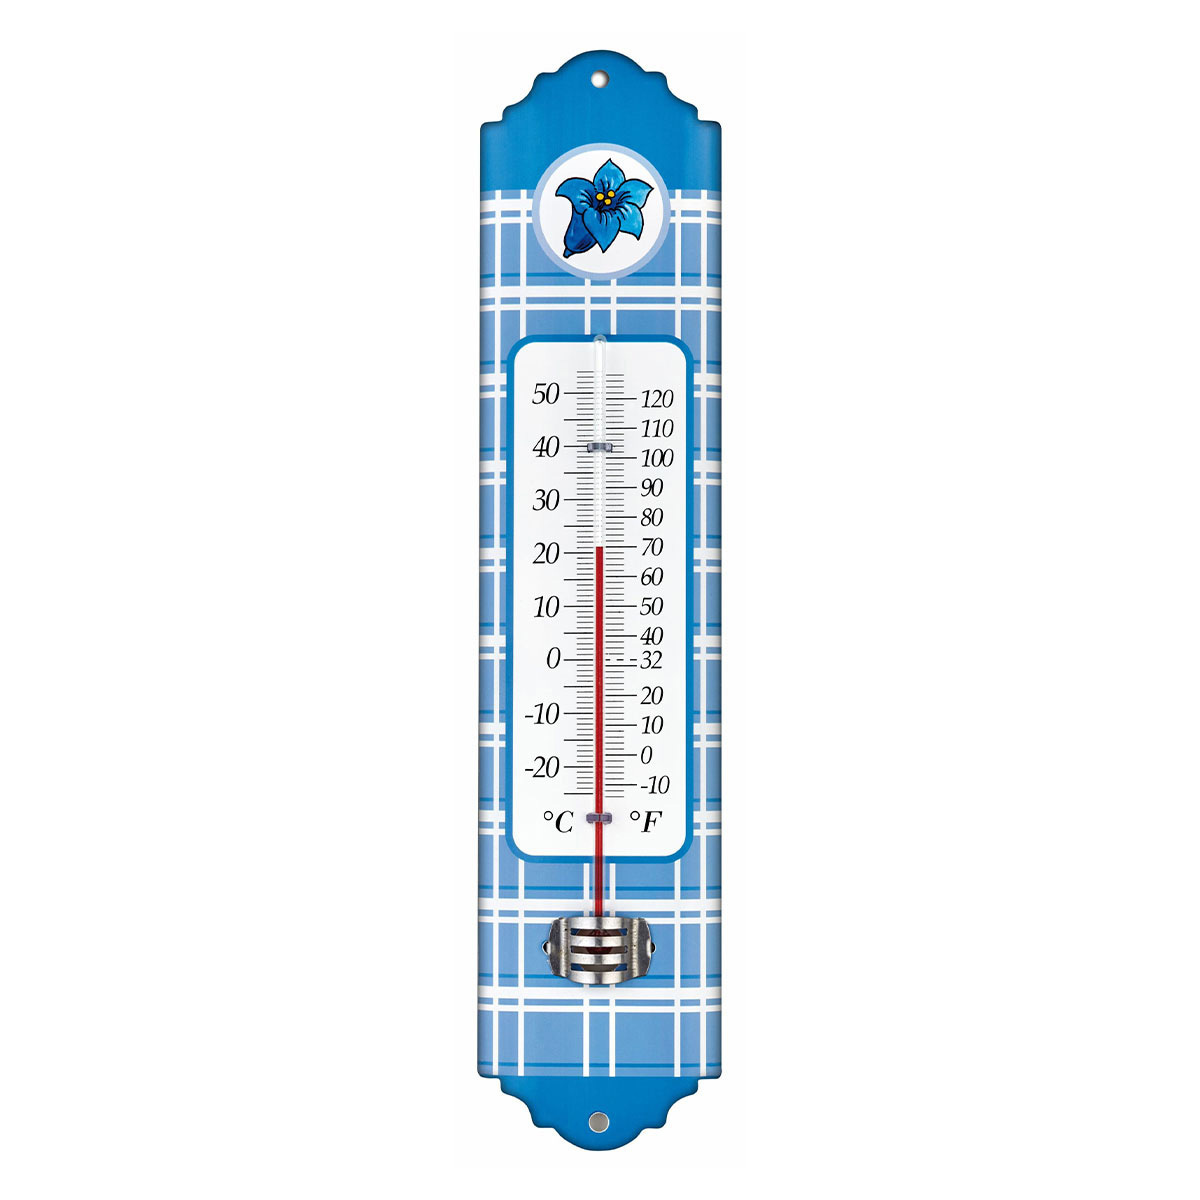 12-2052-06-analoges-innen-aussen-thermometer-metall-1200x1200px.jpg